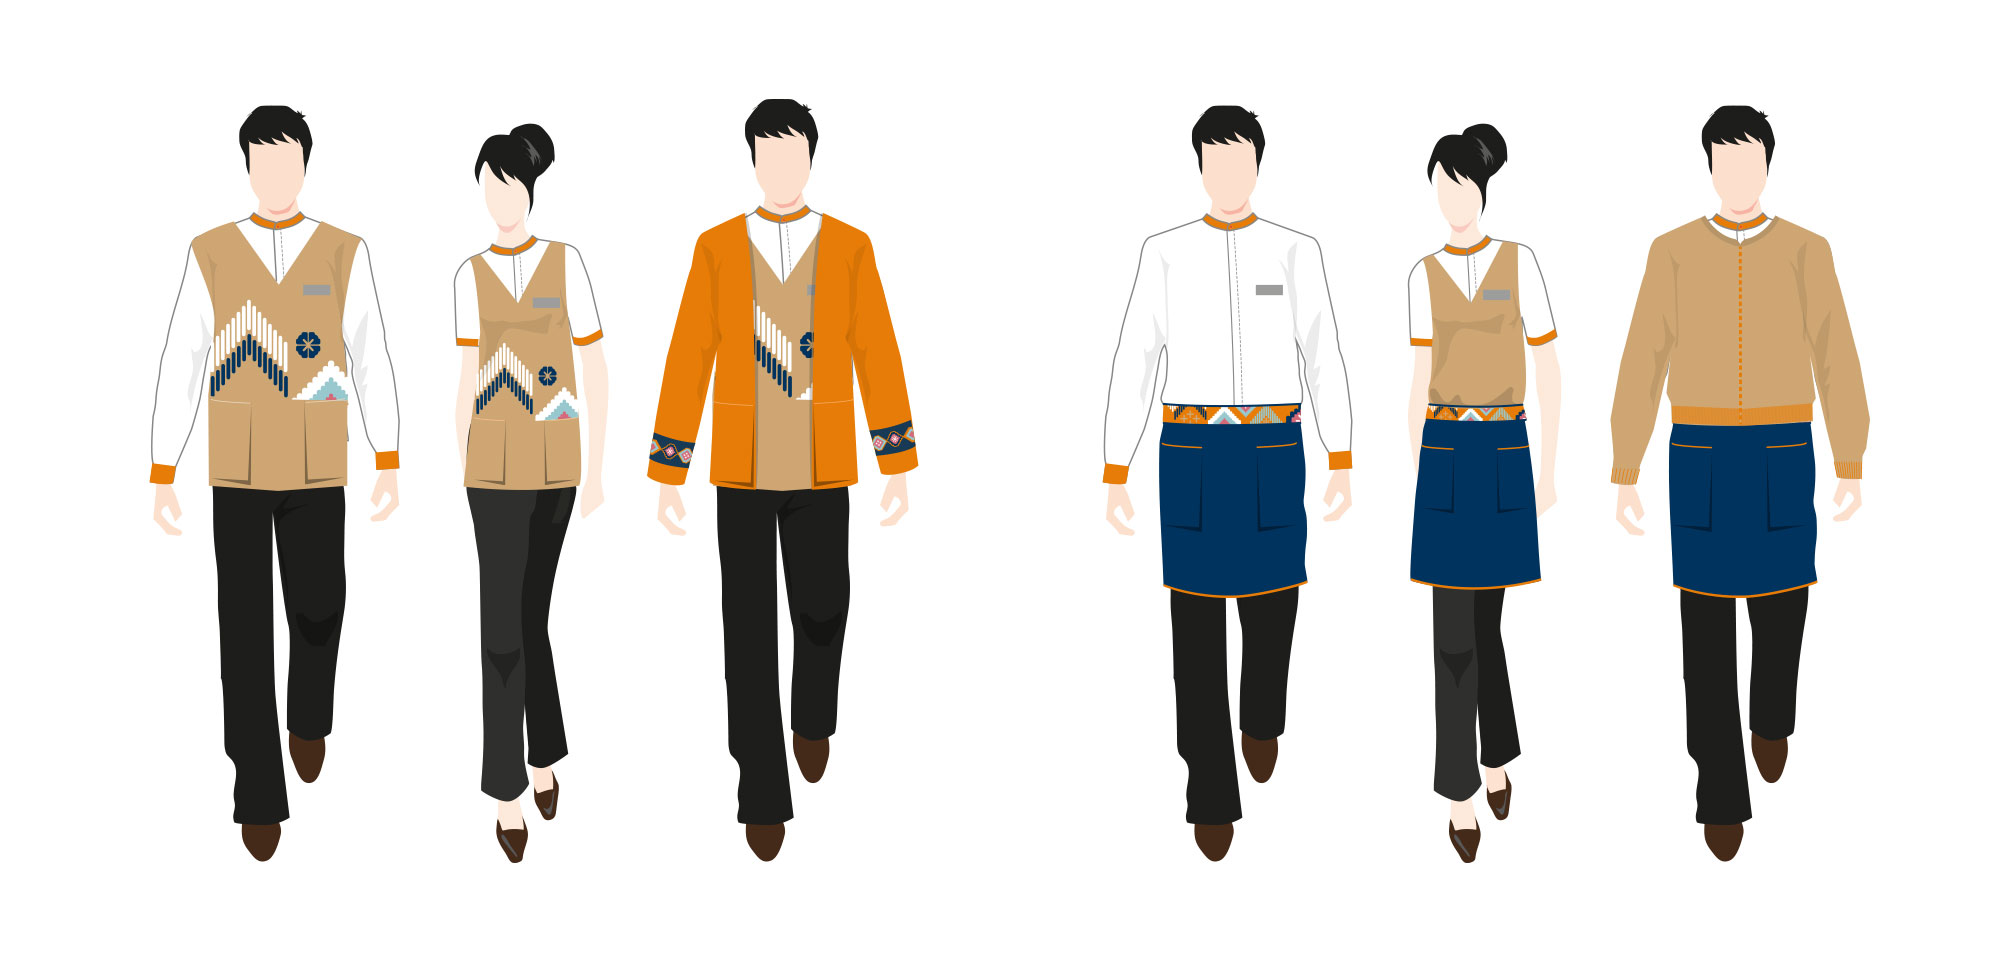 Bhu Bhirom Restaurant Uniform Design